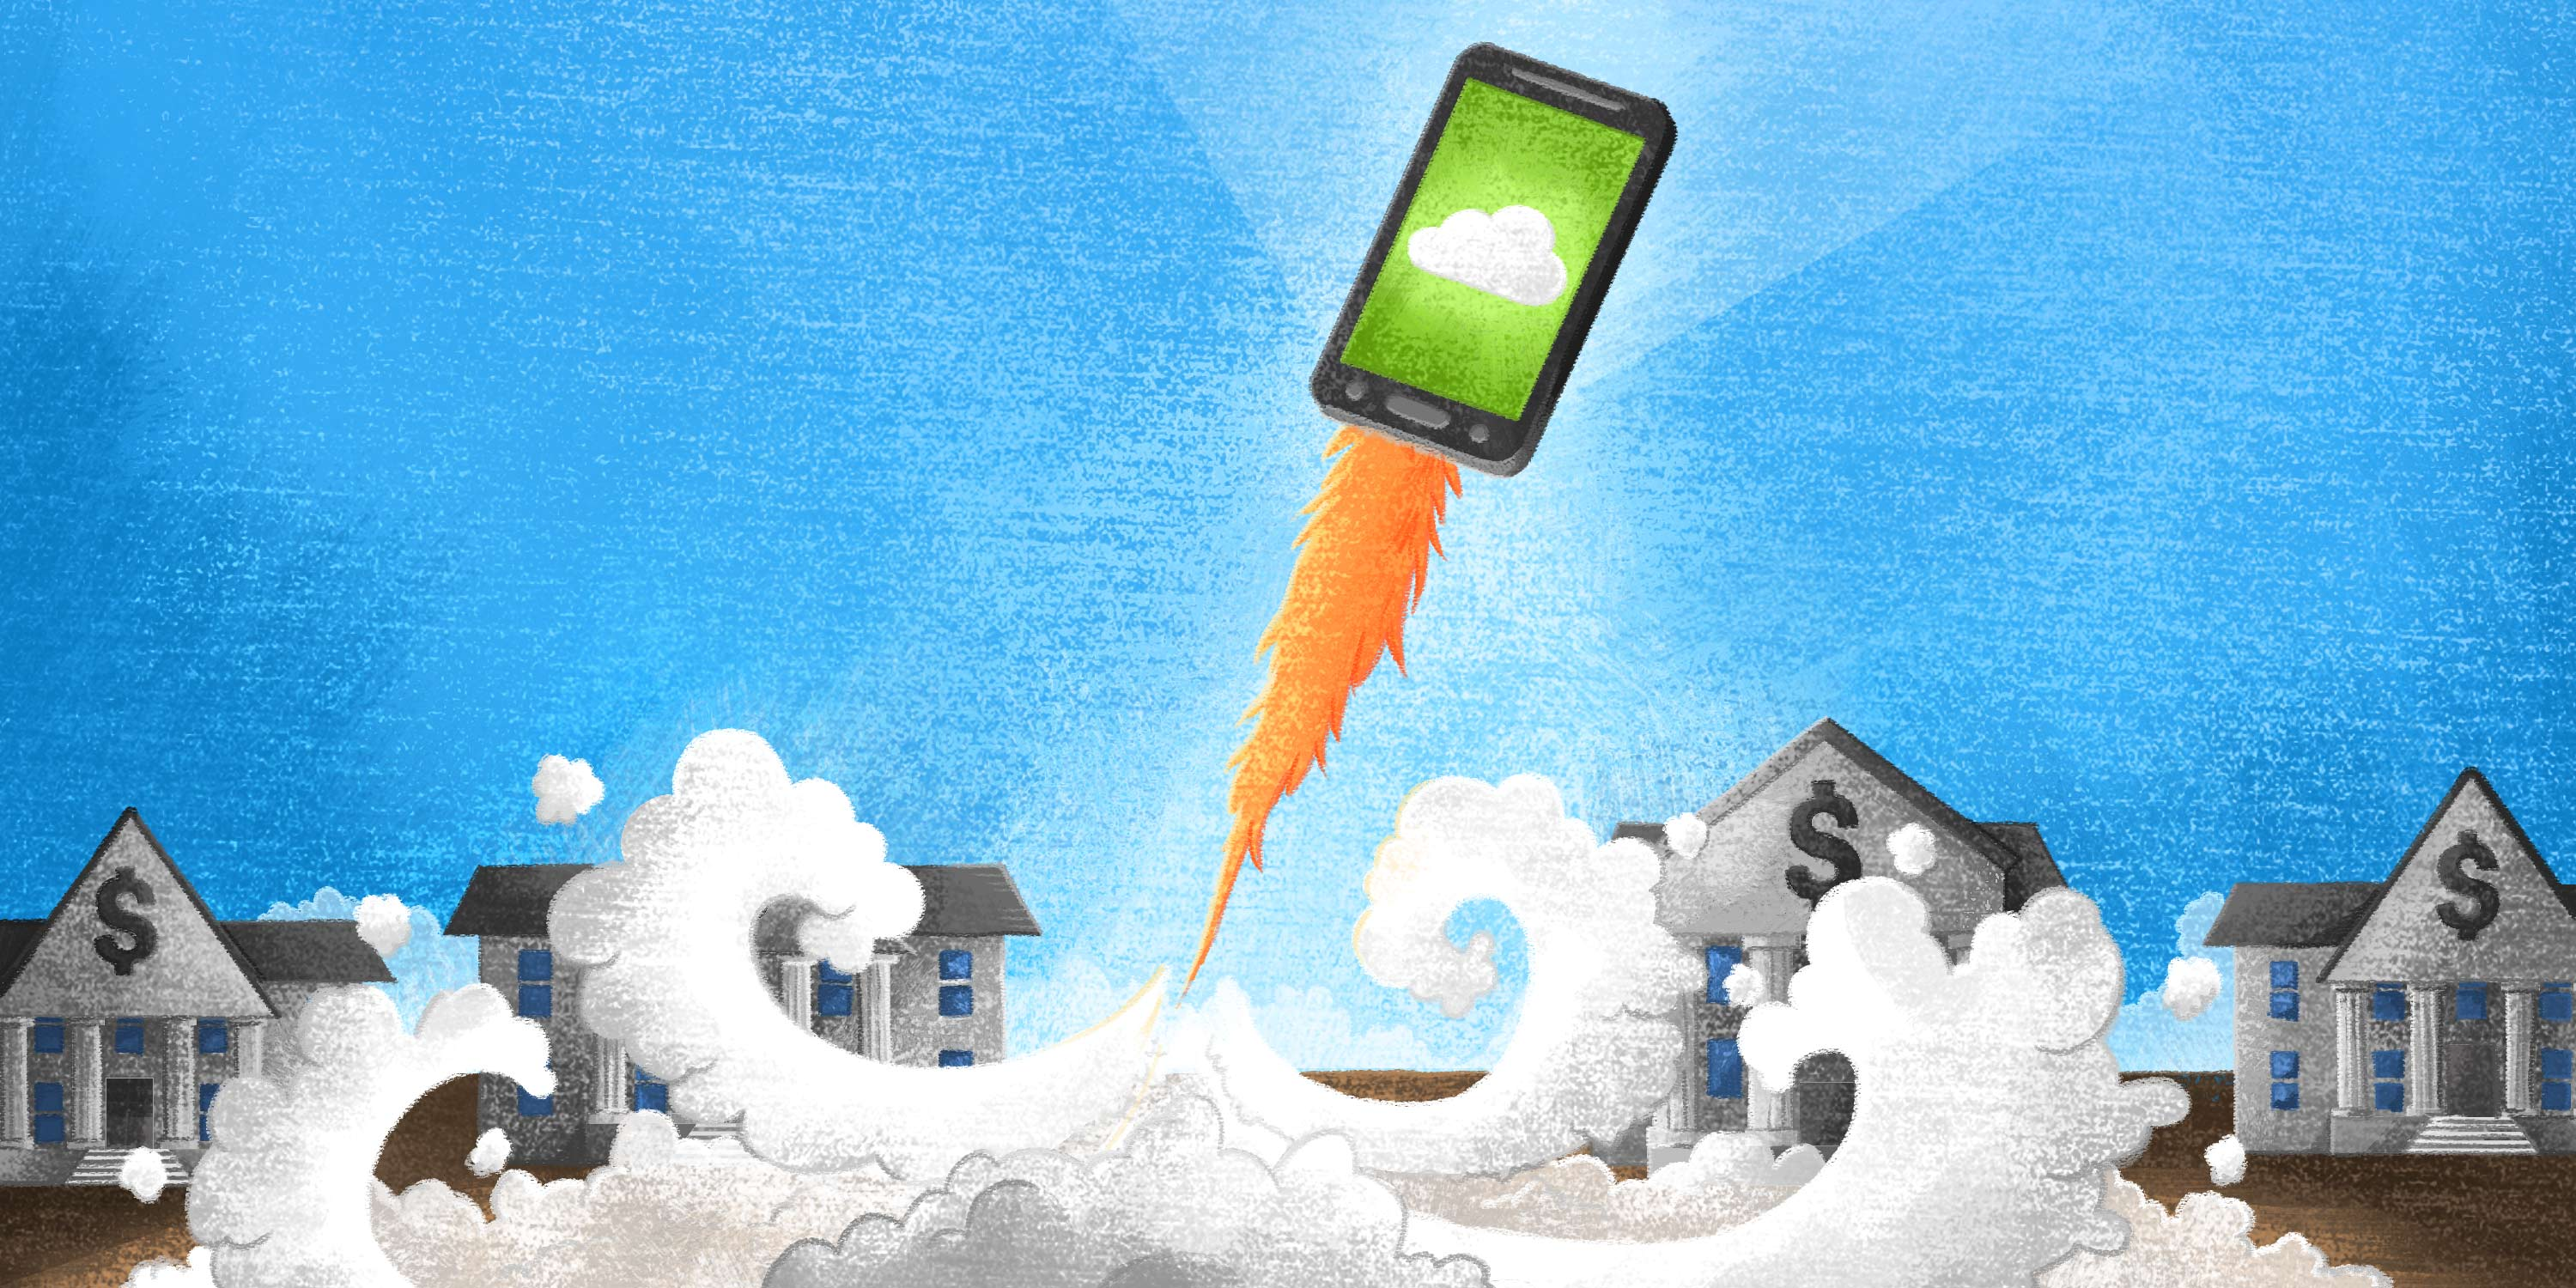 fintech b2b payments app on a smartphone blasting off like a rocket